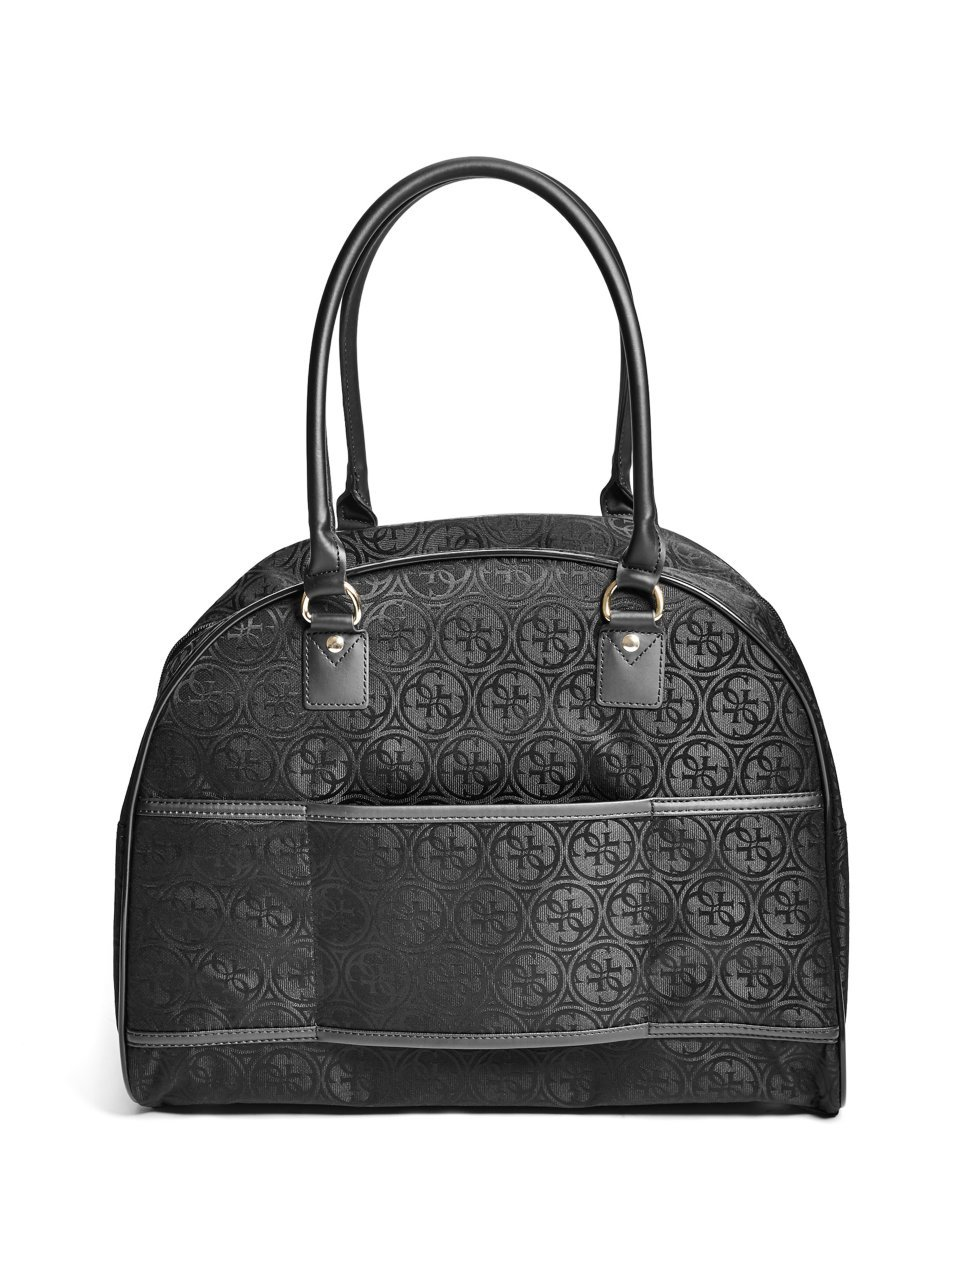 Guess Ryann Dome Travel Tote, Black, One Size